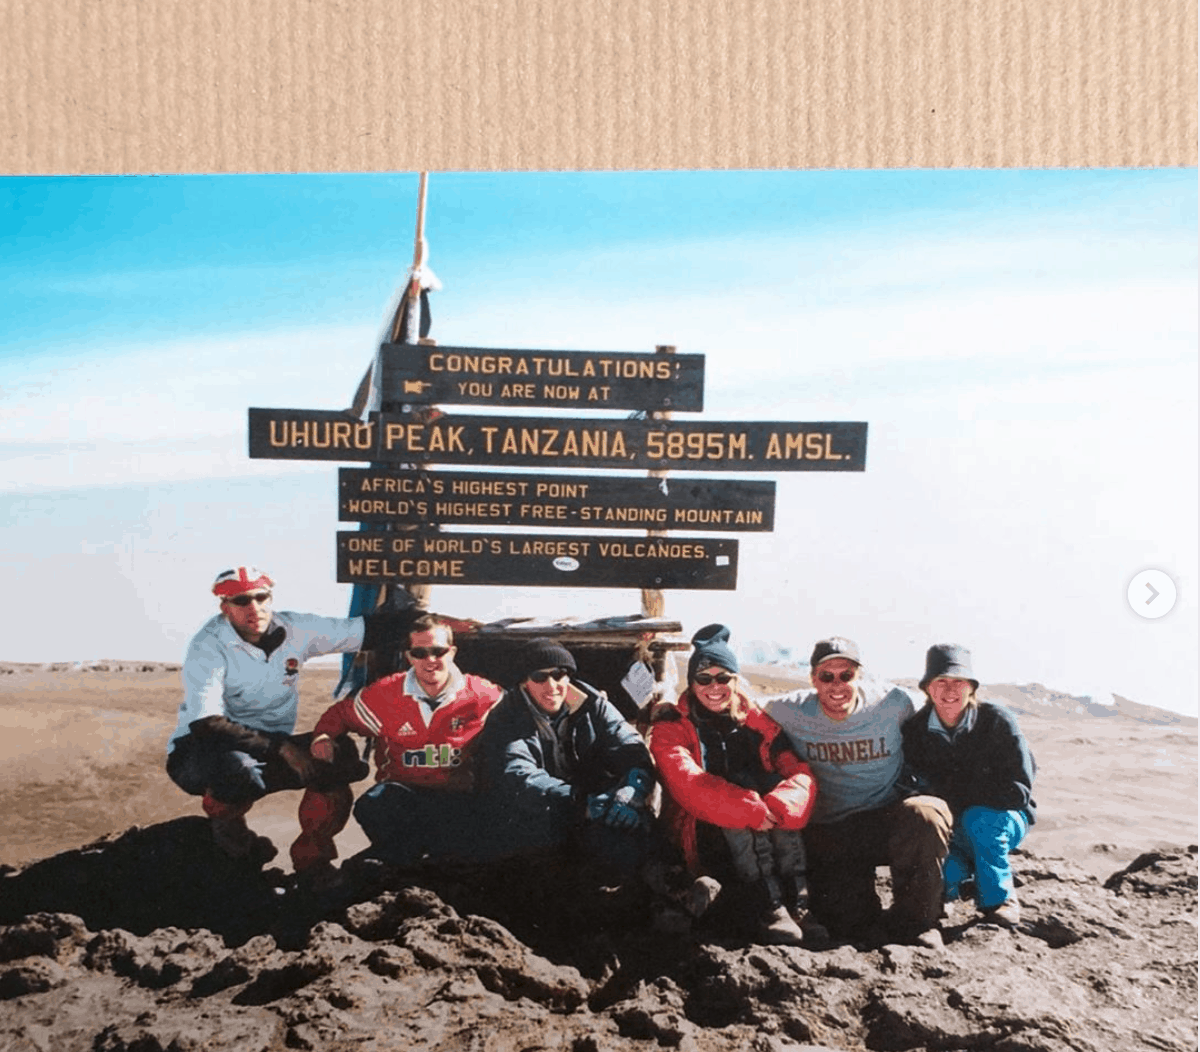 Kilimanjaro Peak Group Photo